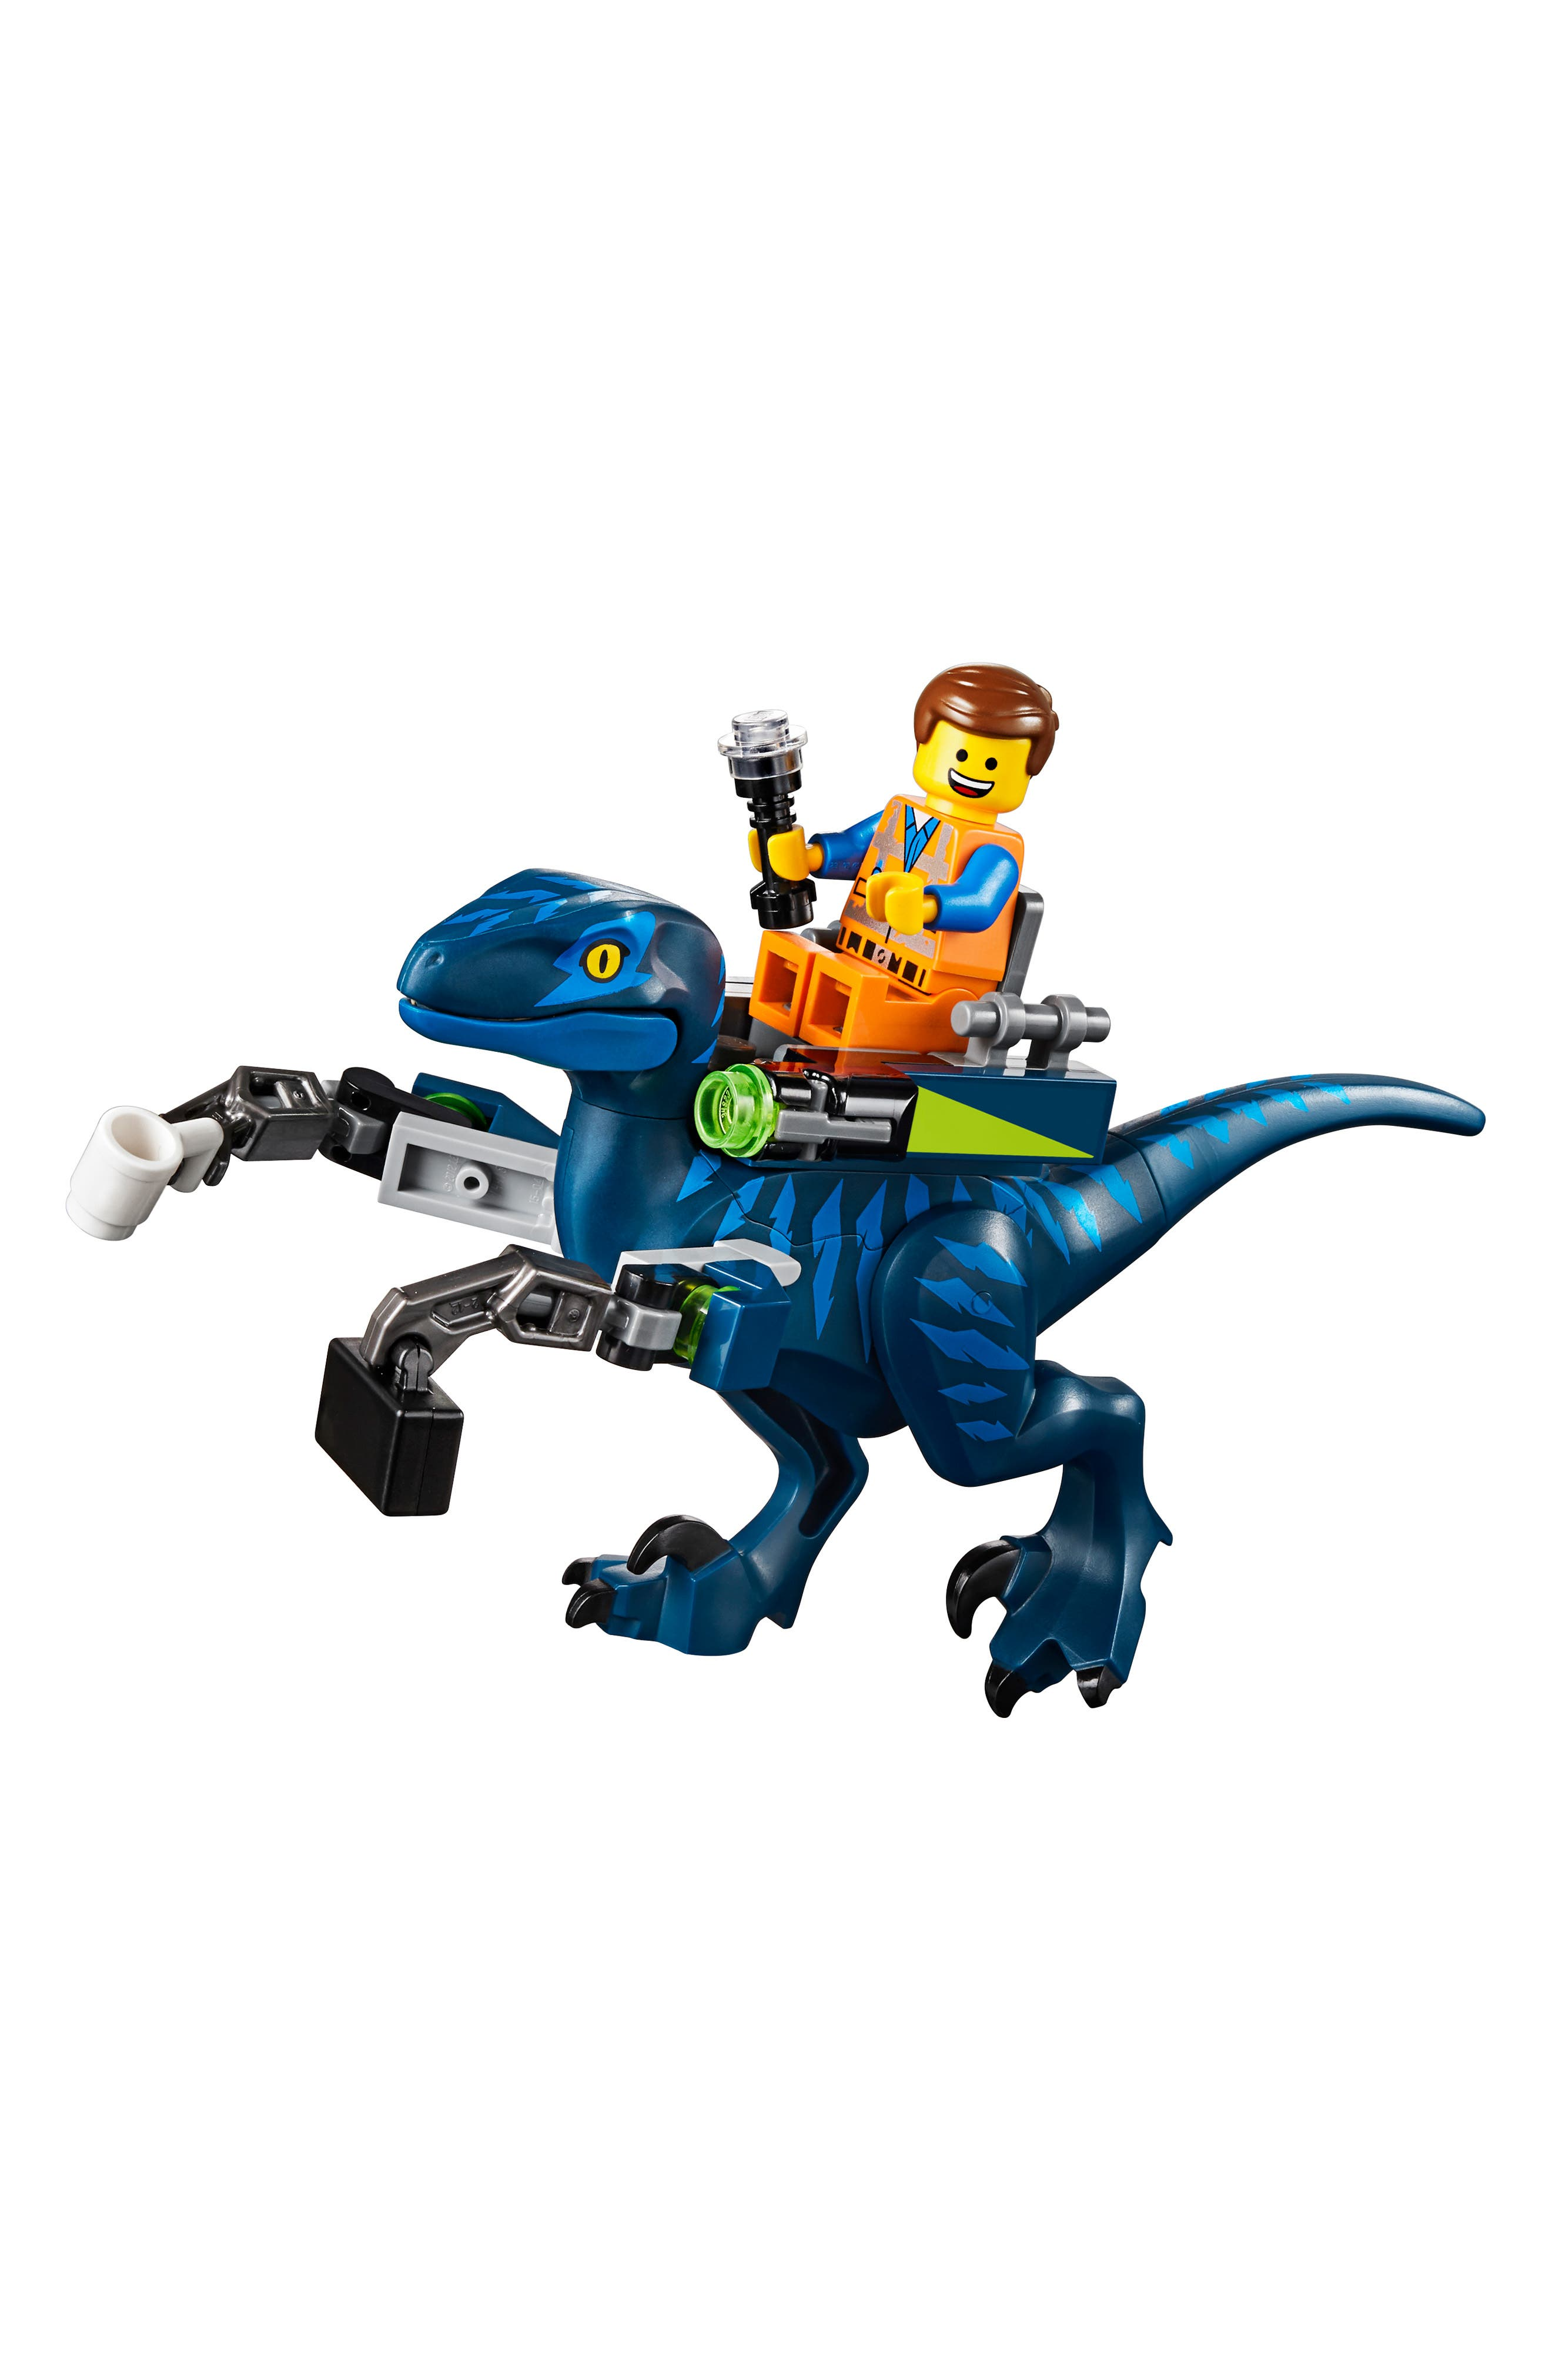 LEGO<SUP>®</SUP>,                             The LEGO<sup>®</sup> Movie 2 Rex's 3-in-1 Rex-treme Offroader Toy - 70826,                             Alternate thumbnail 5, color,                             960